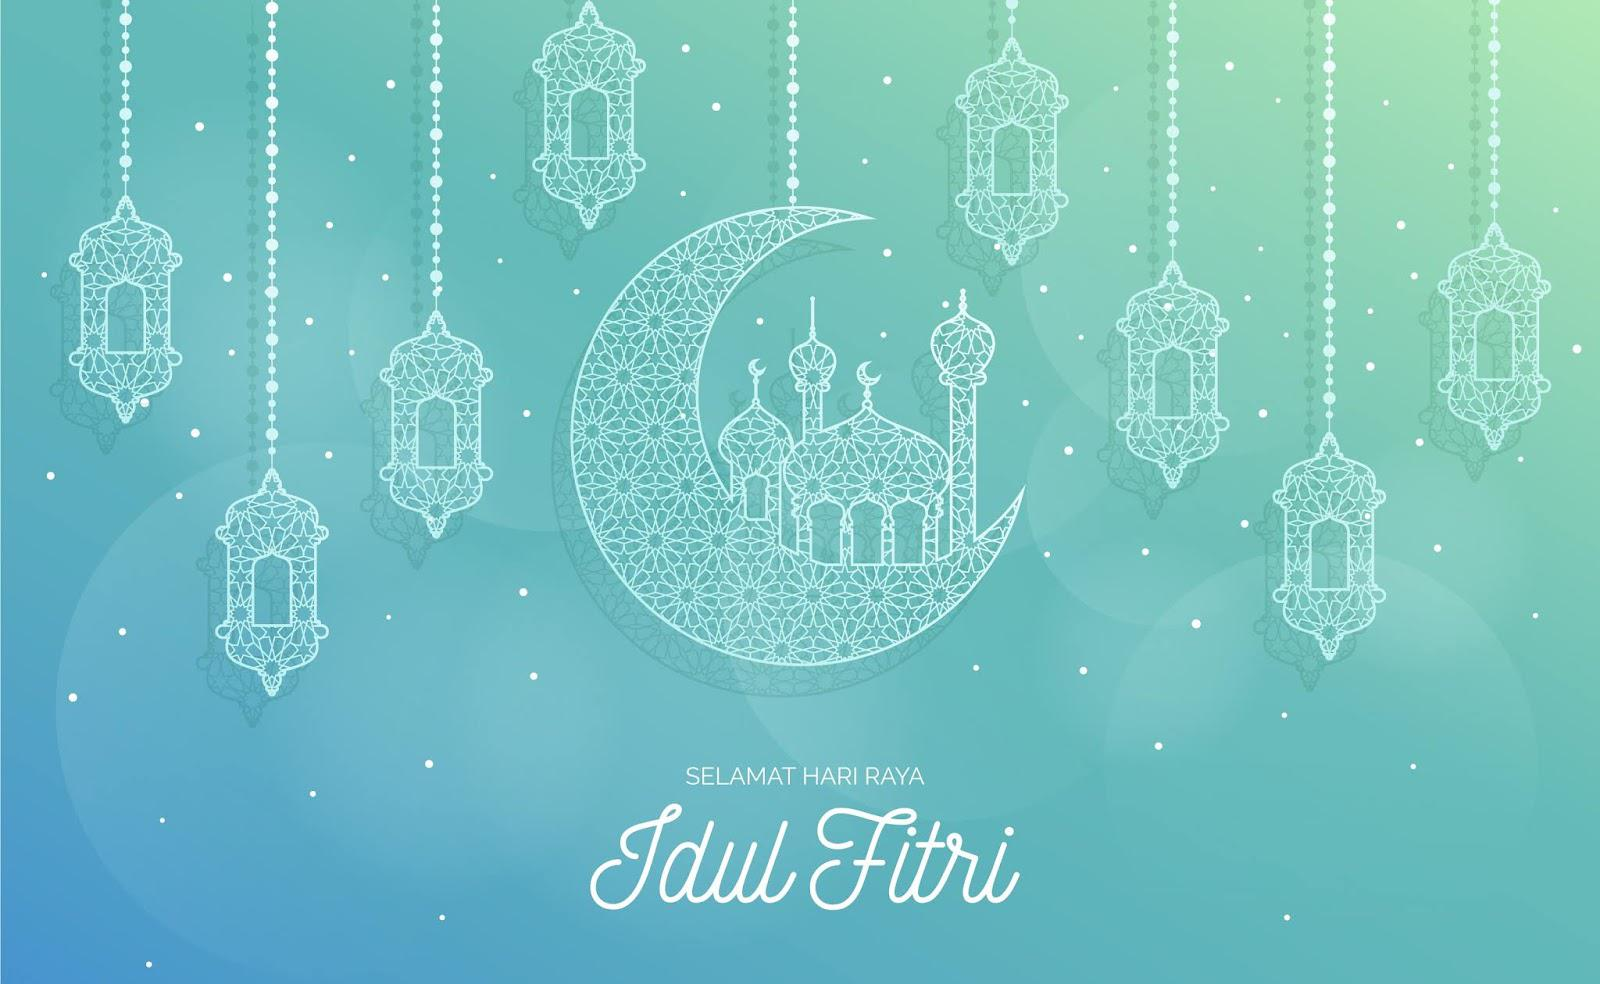 Idul Fitri Wallpapers - Top Free Idul Fitri Backgrounds - WallpaperAccess